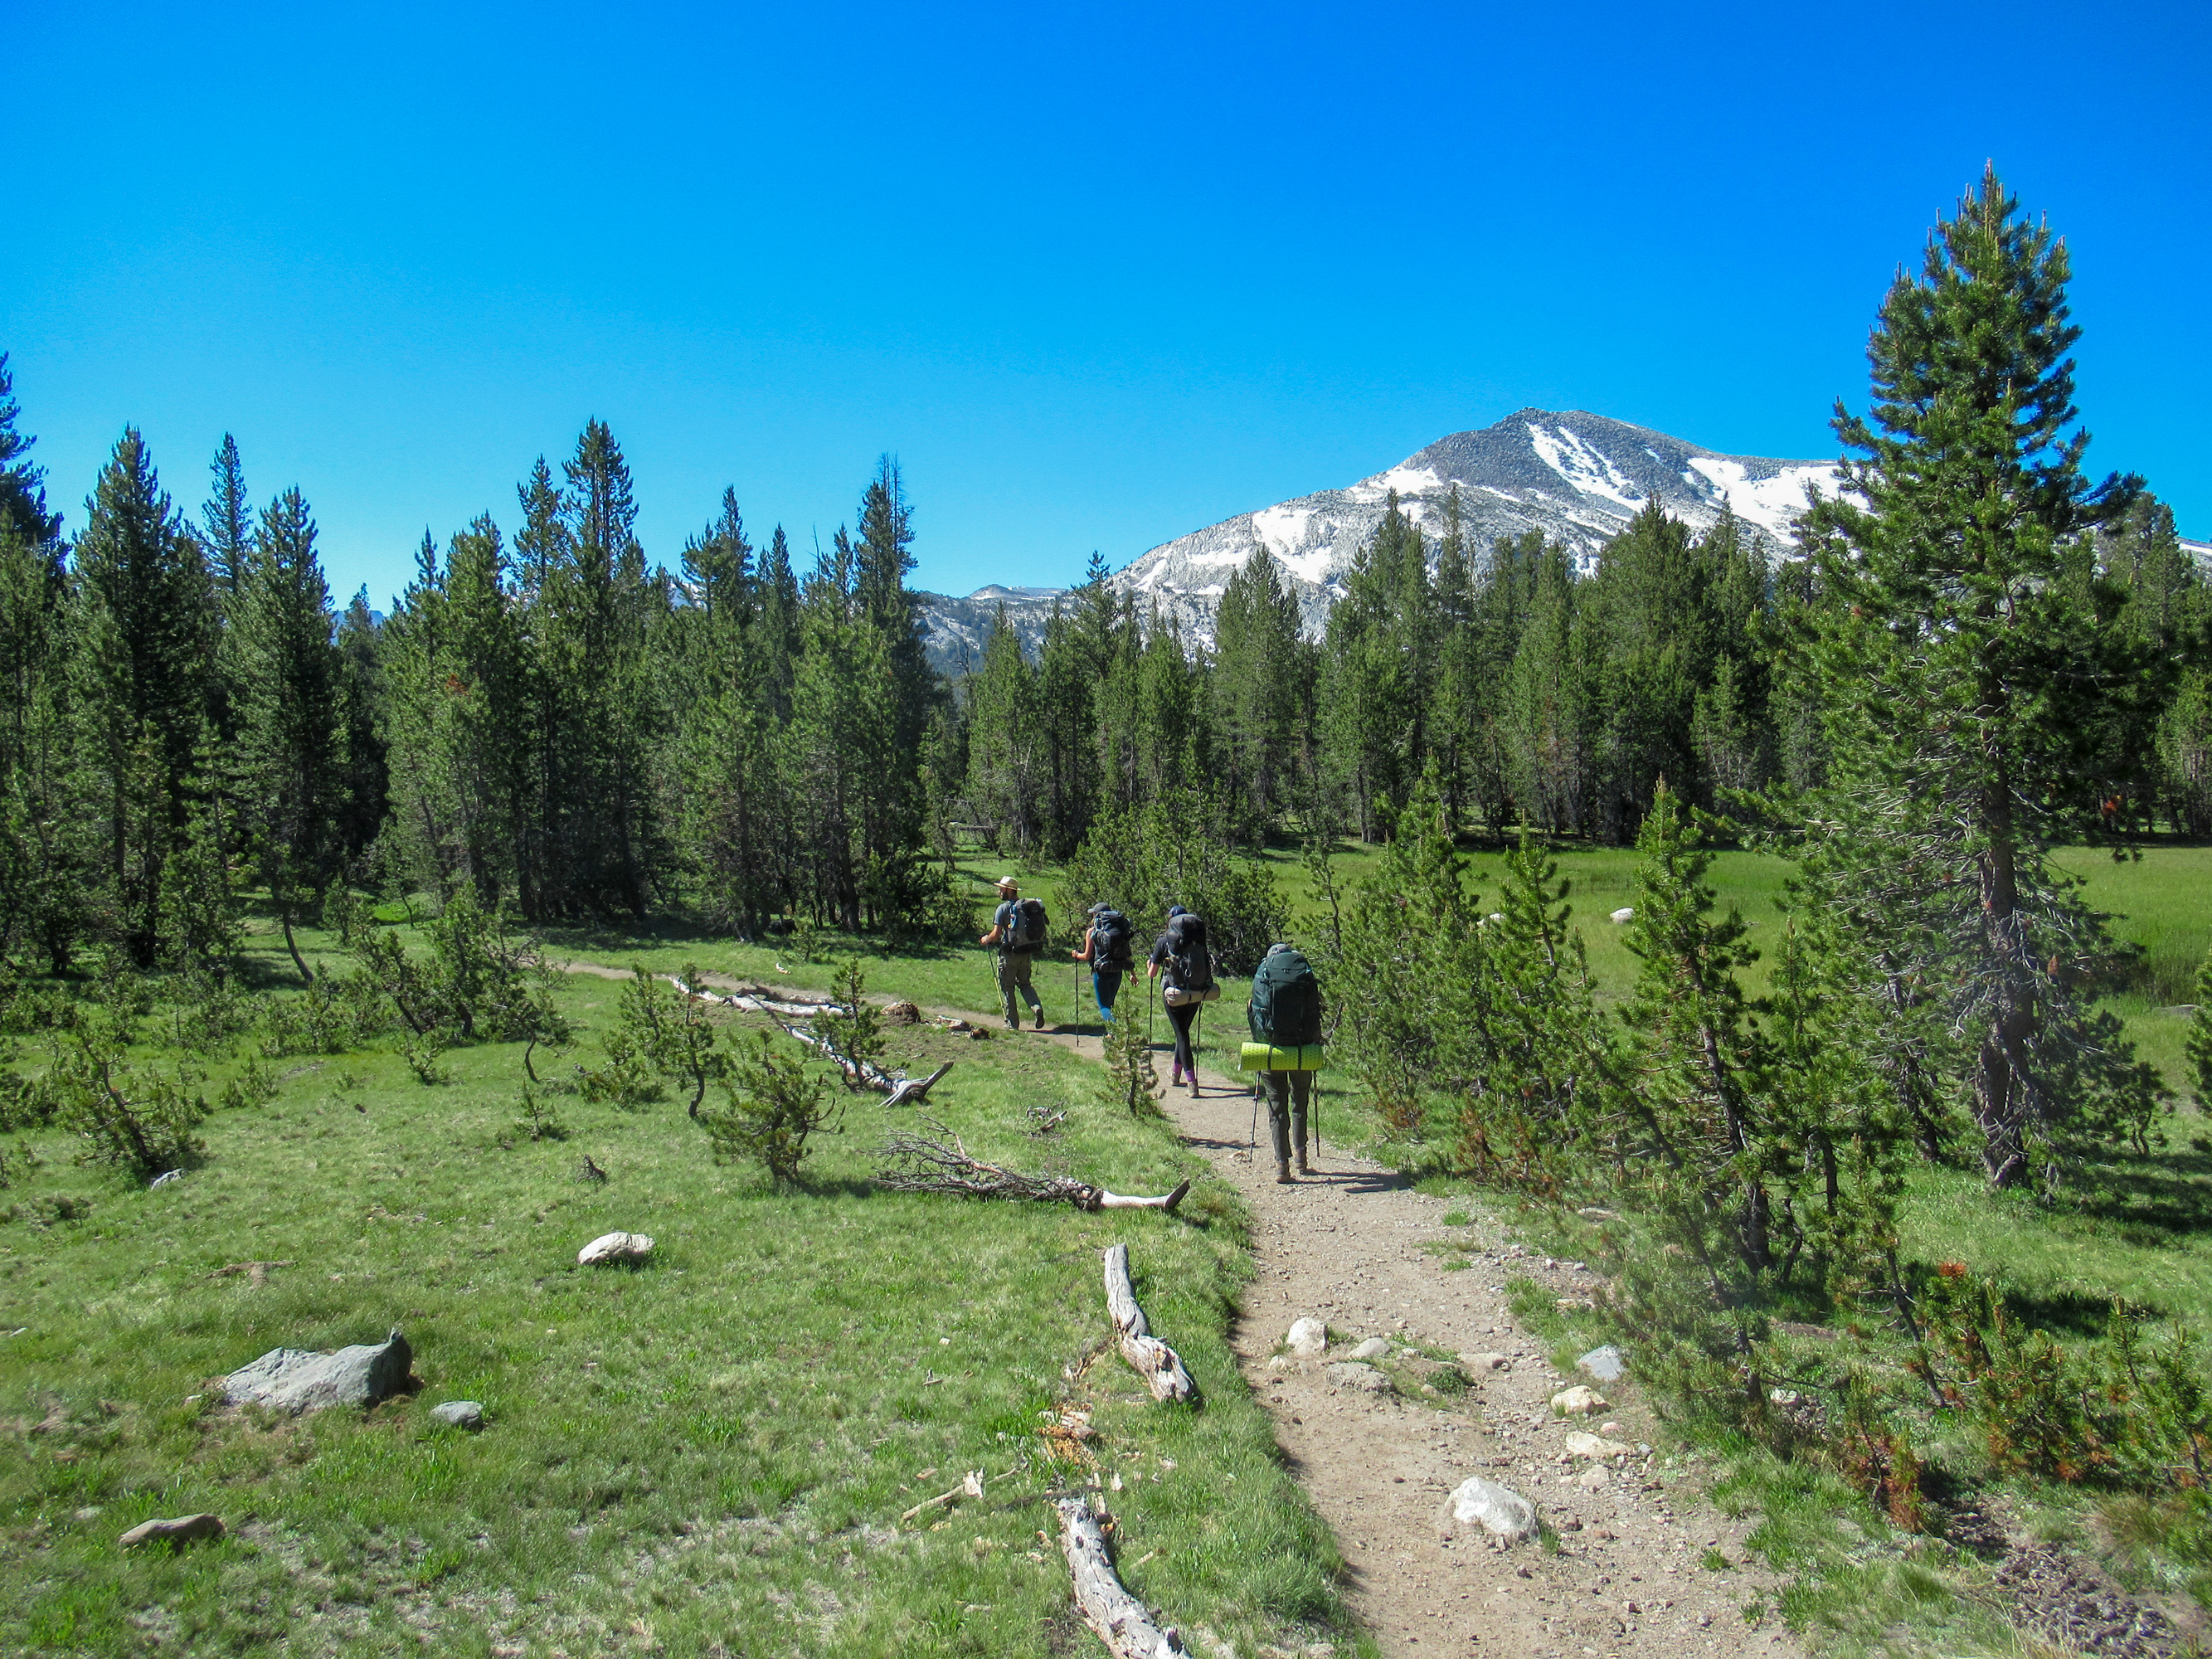 Heading out for a backpacking trip over Mono Pass.